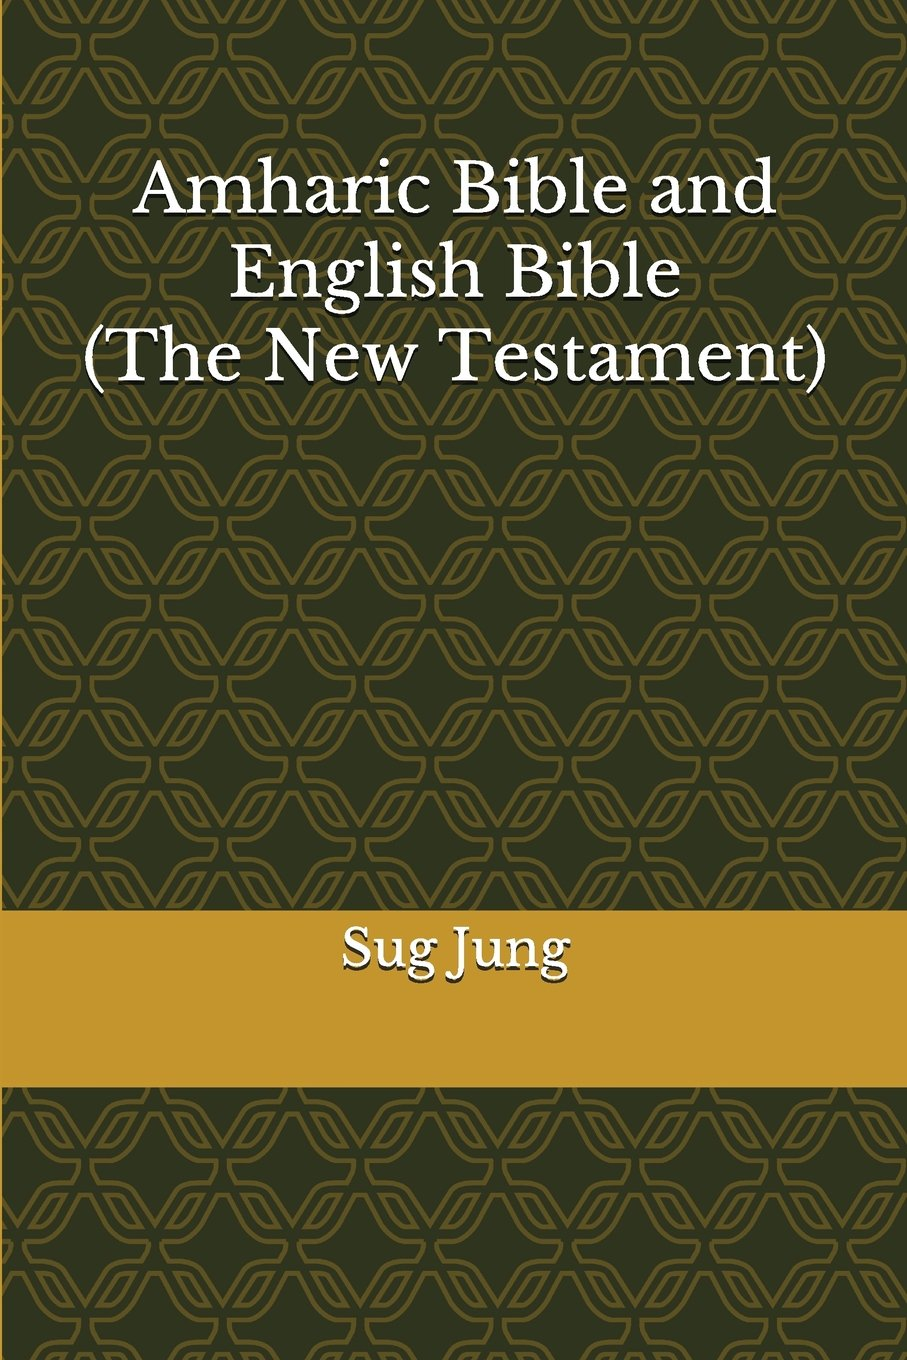 Amharic Bible and English Bible(The New Testament): Sug Jung